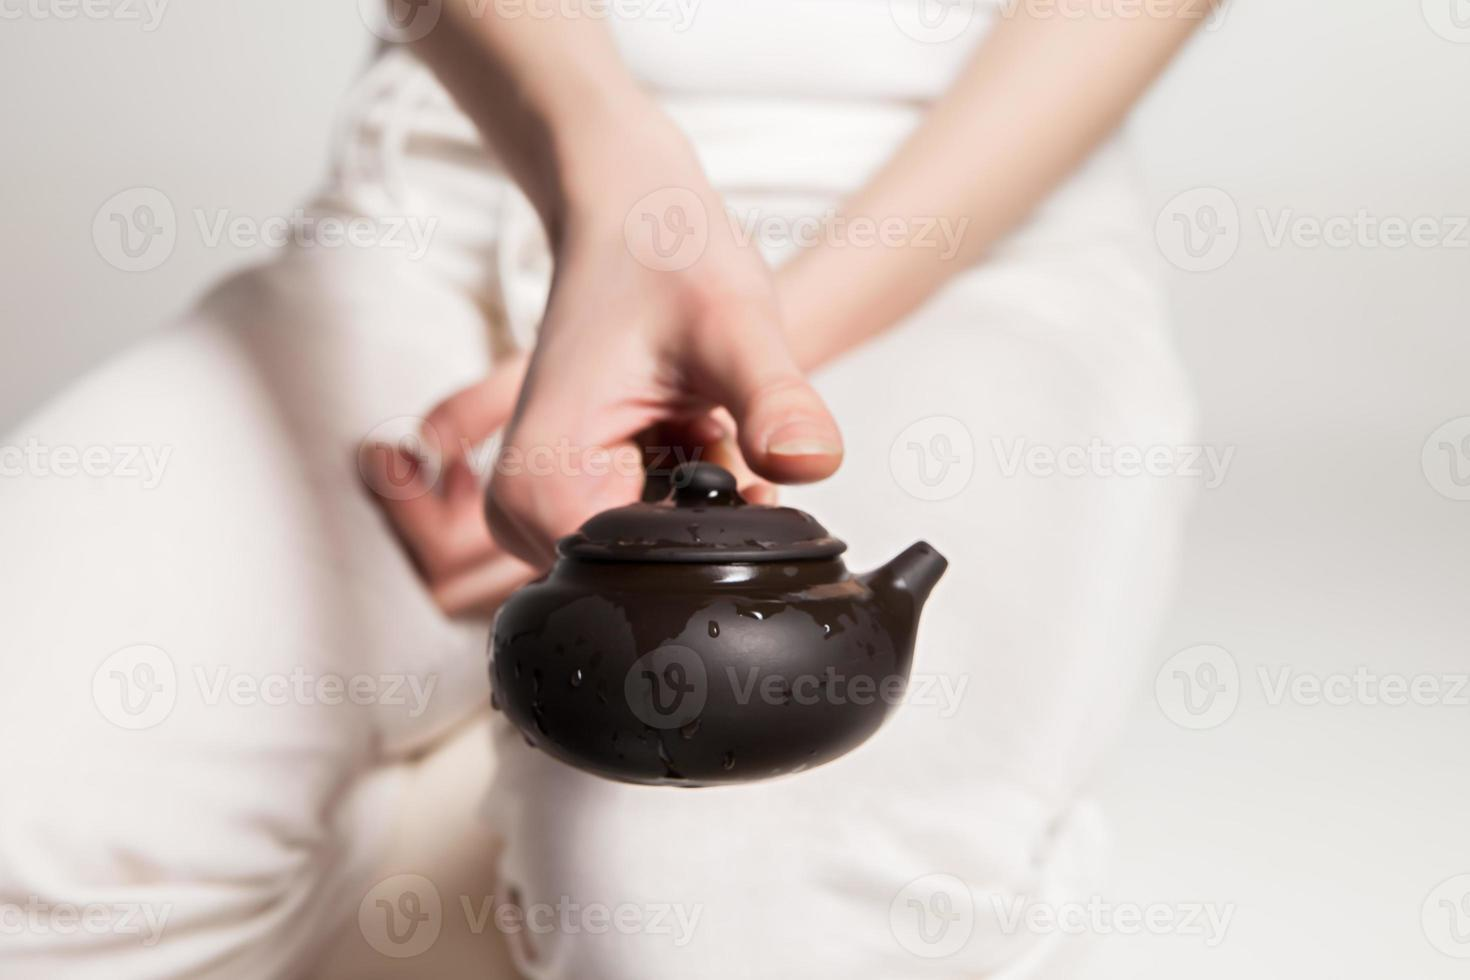 Chinese tea ceremony is perfomed by master photo